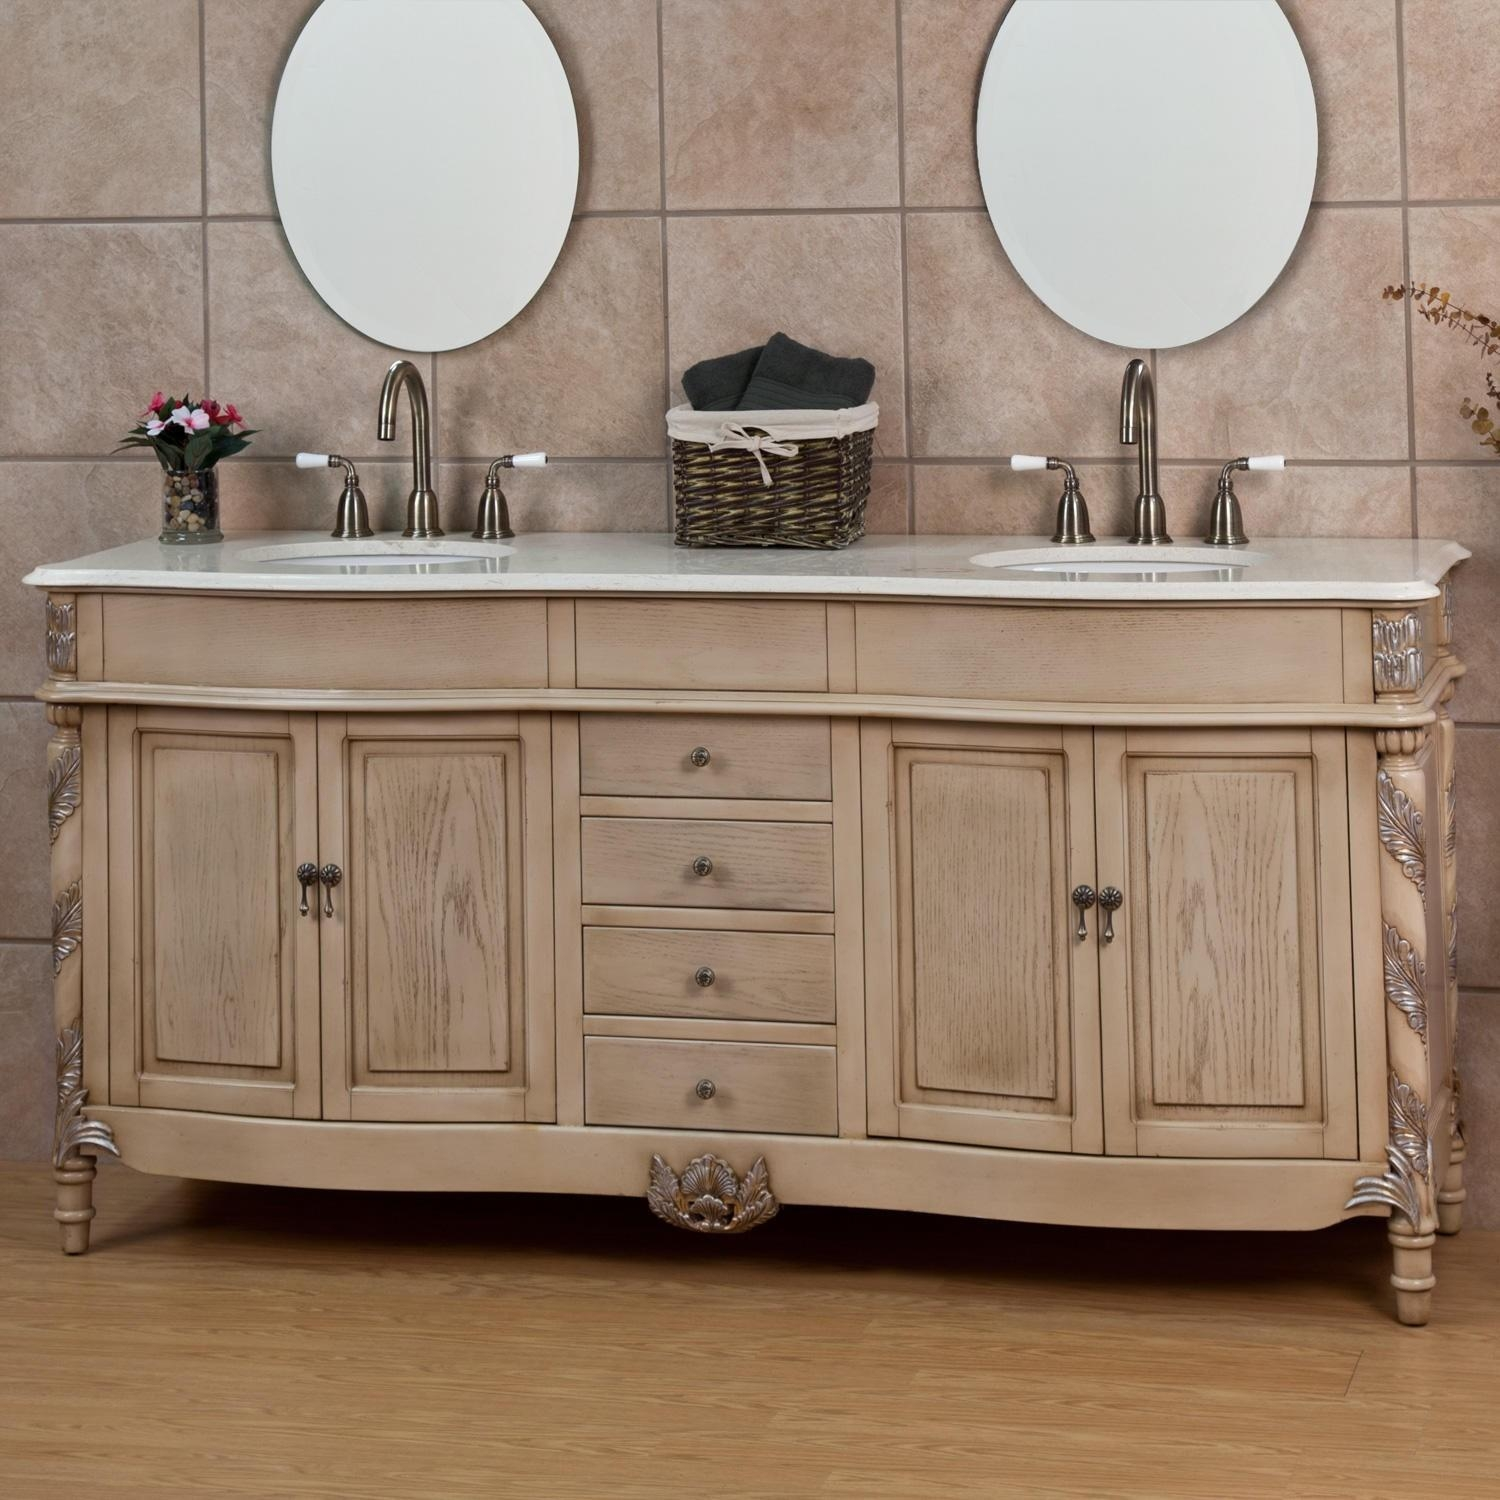 bathroom mirrors ideas with vanity 20 inspirations antique white oval mirror mirror ideas 23014